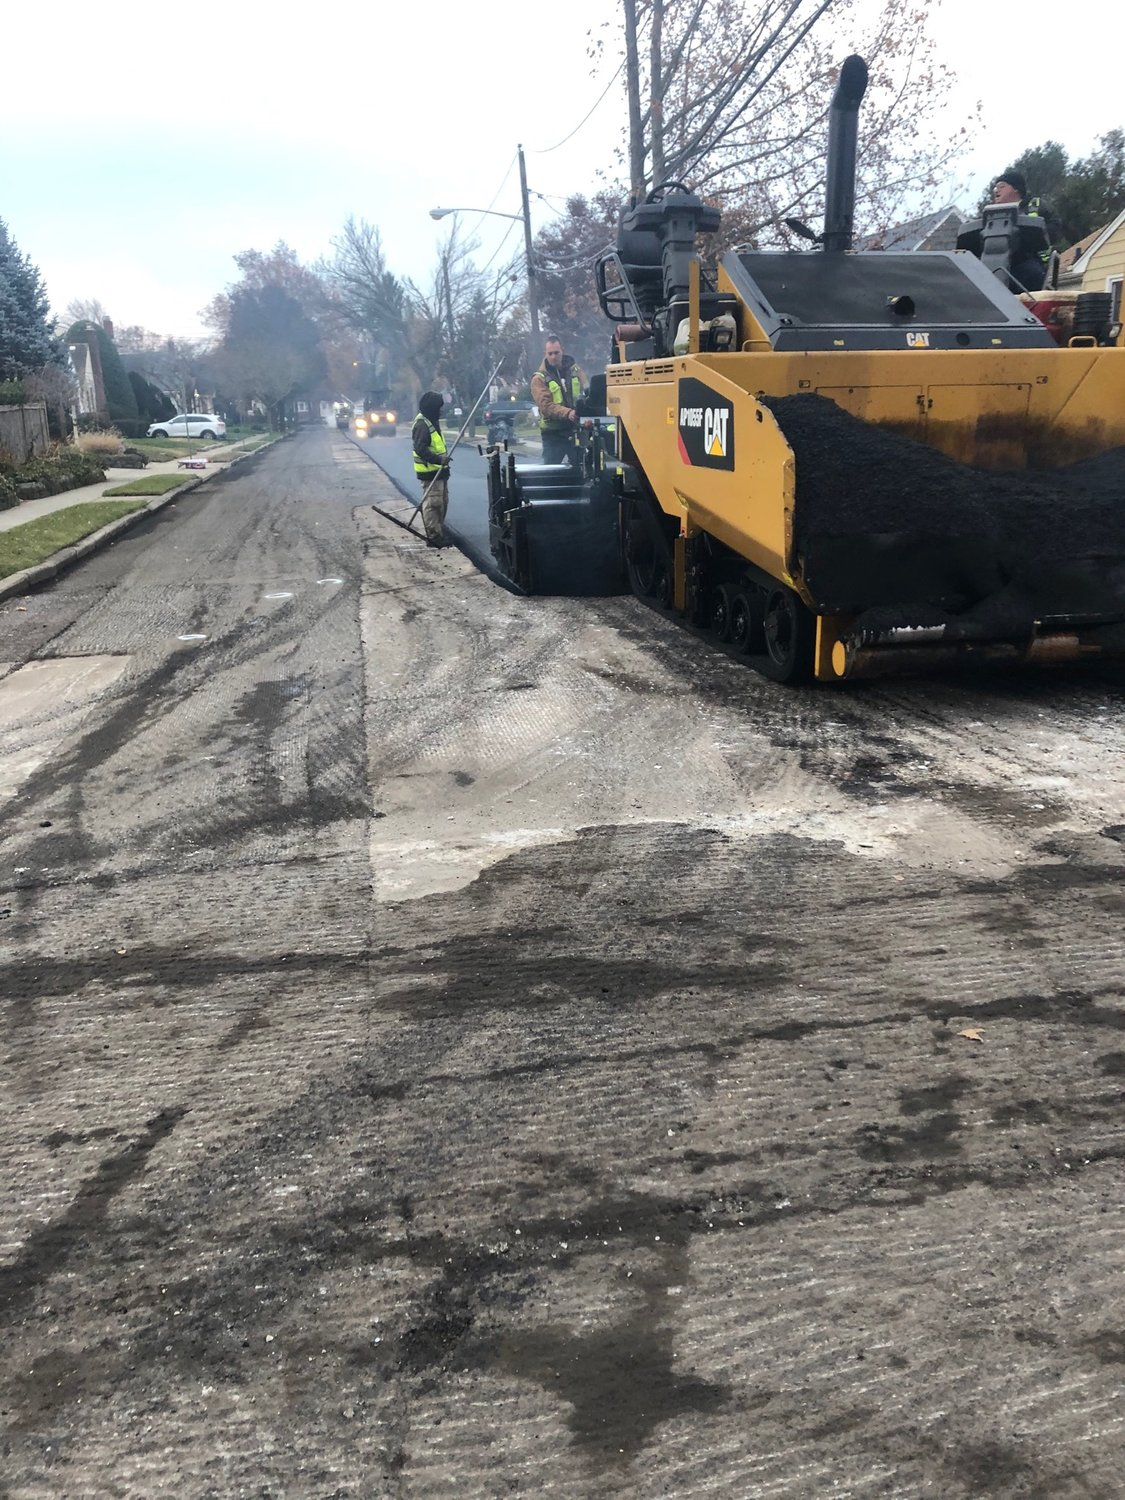 Roughly 43 percent of all the village's roads were repaired in the past seven months. Corbett said that collaboration between the village's Department of Public Works and the utilities have helped the project move forward.